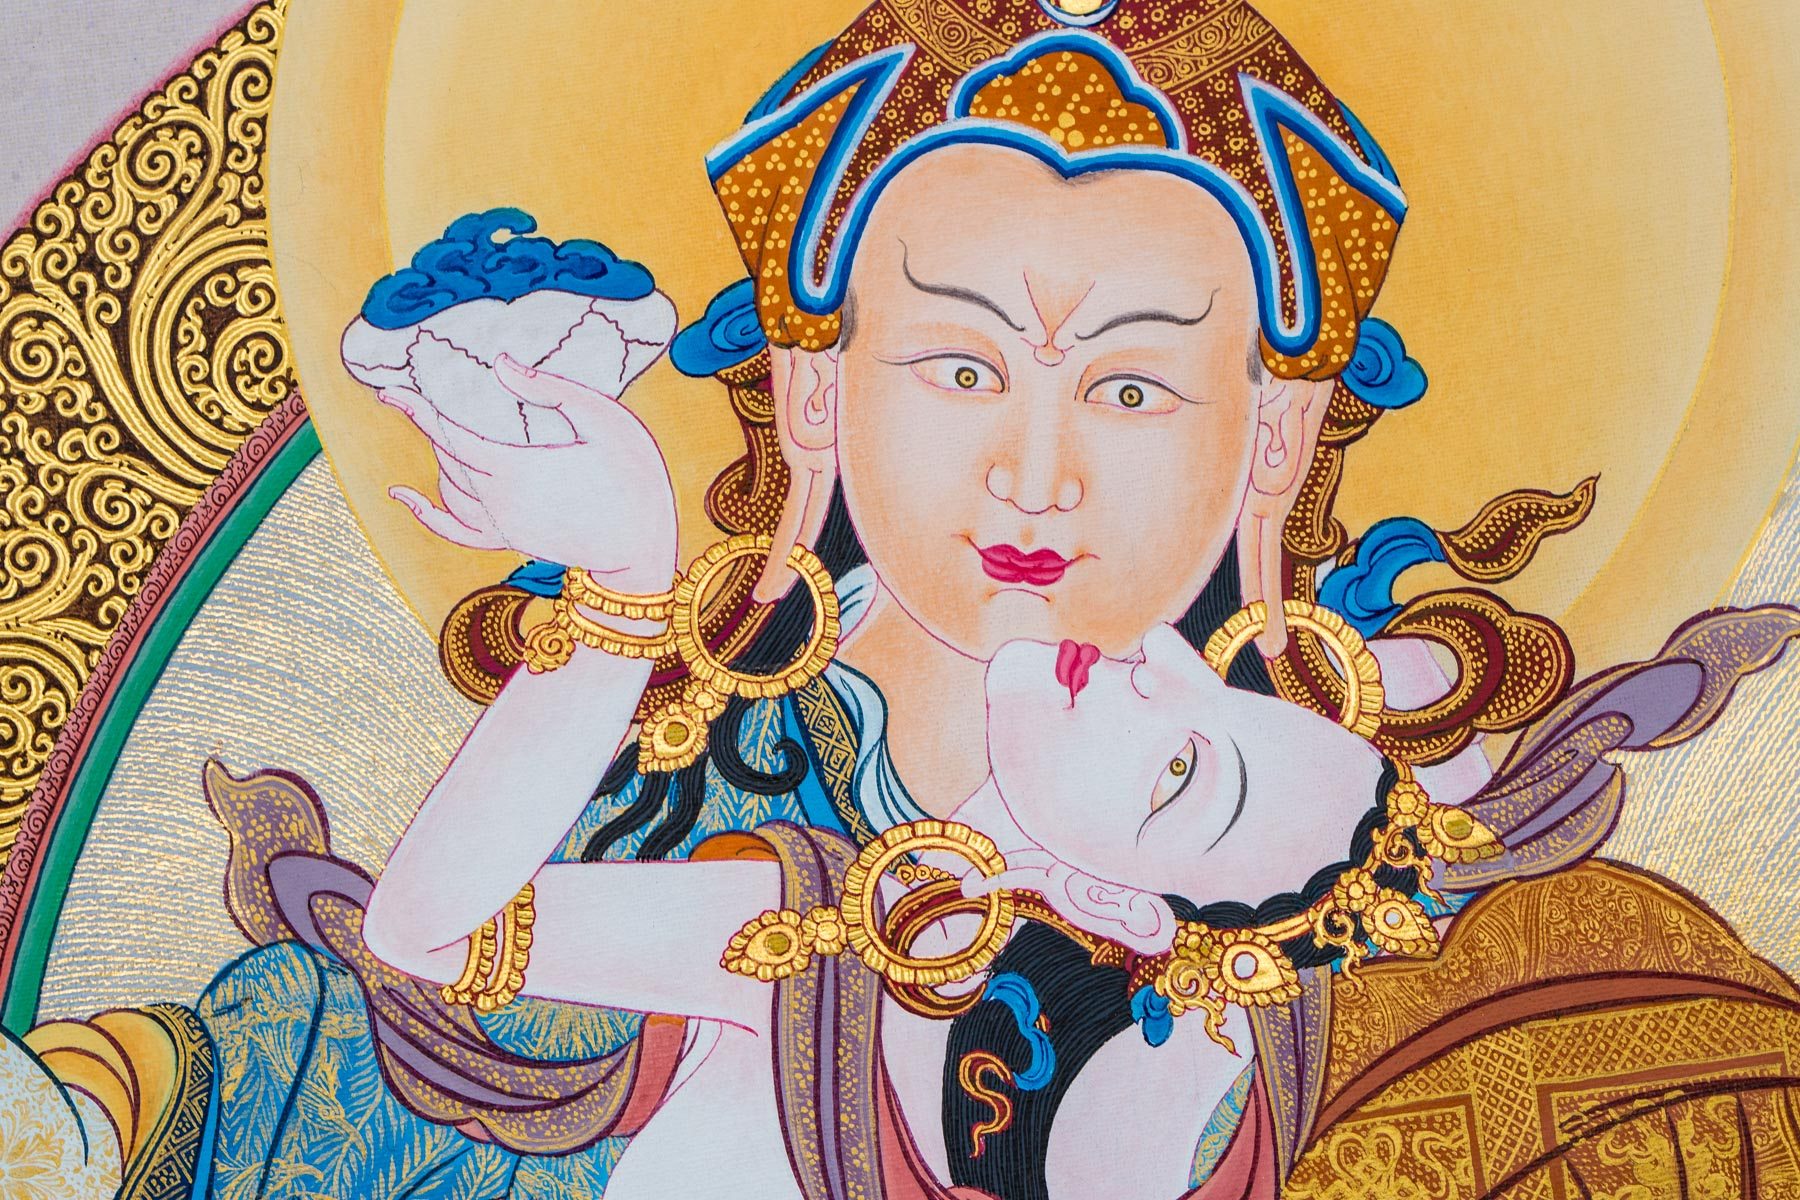 Guru Rinpoche with Consort (Detail G)